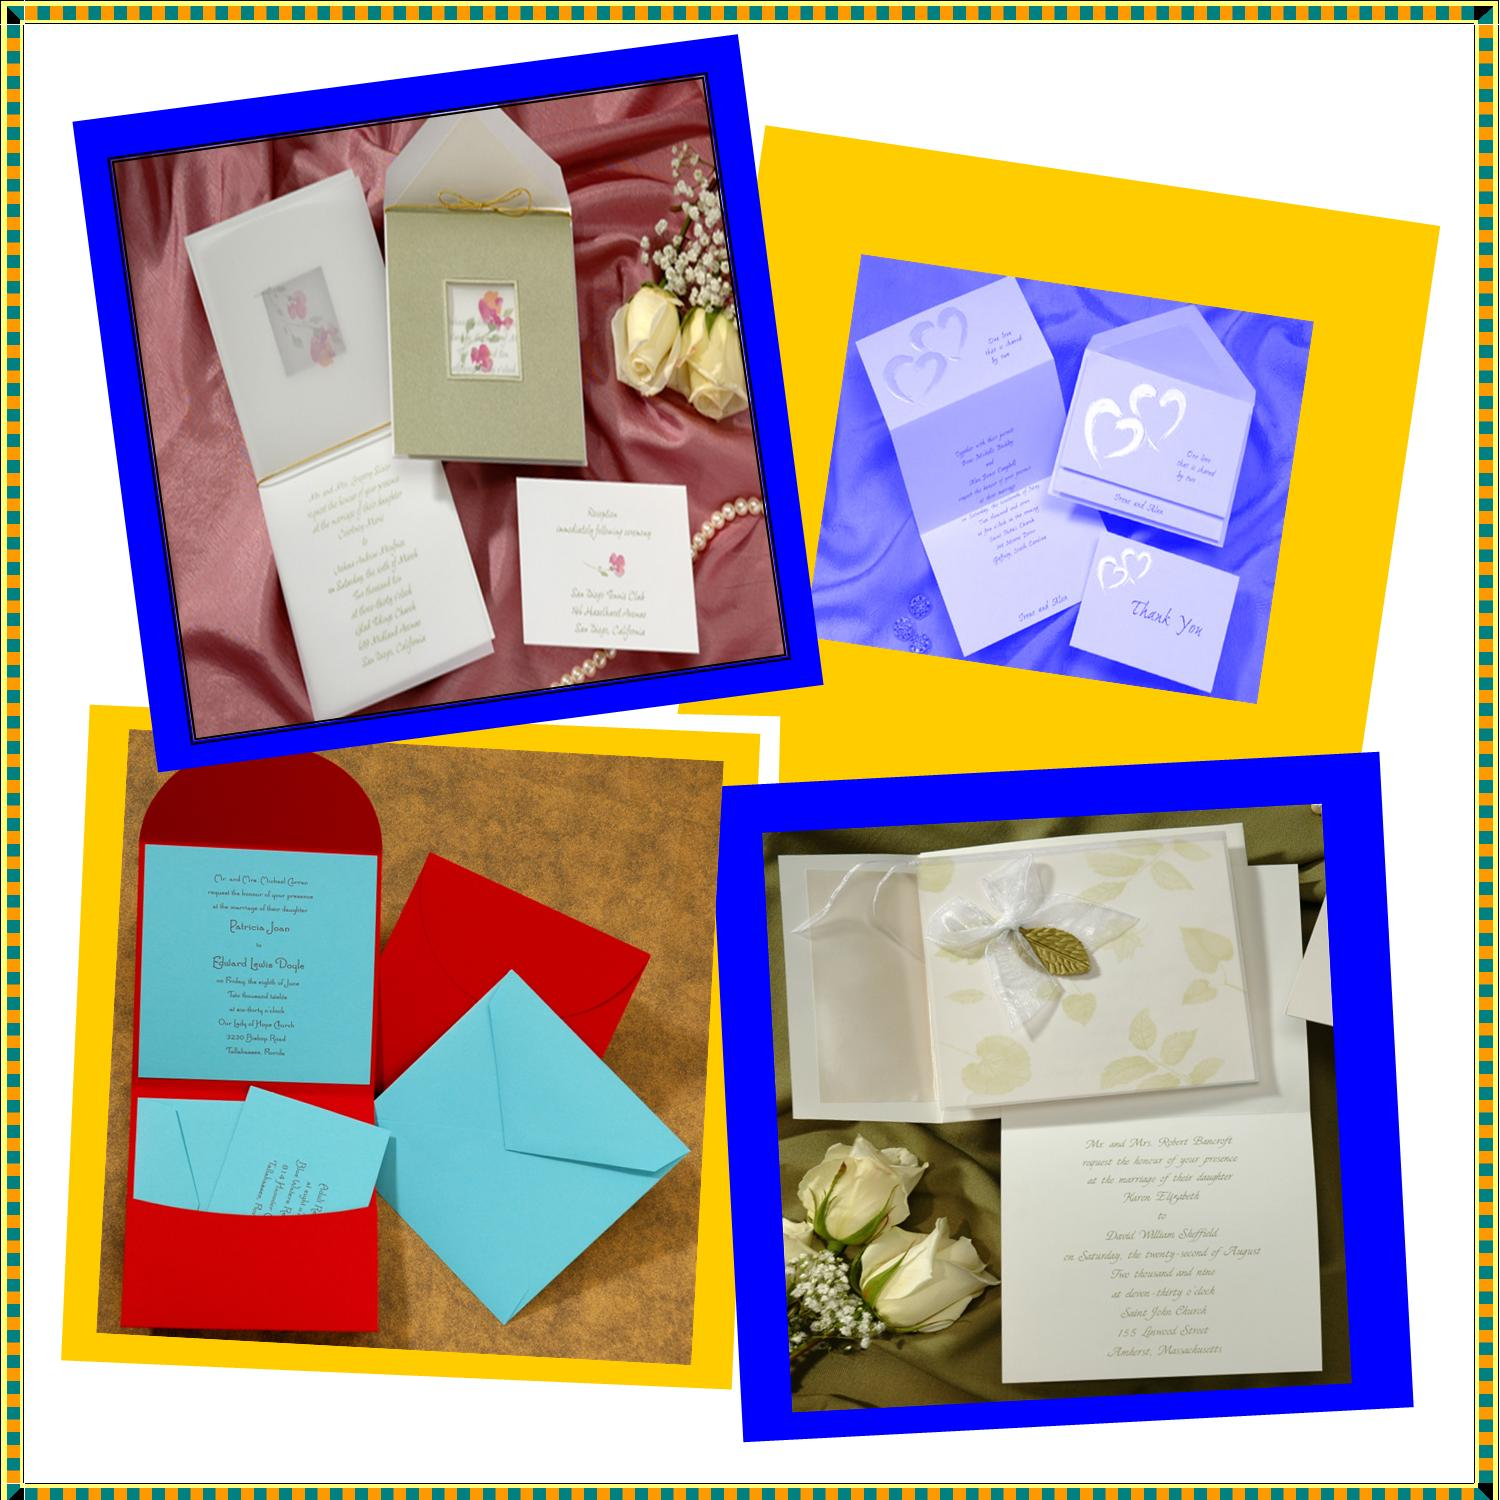 Trenton nj wedding invitations we professionally and all ogoszenie darmowe lokalizacja trenton nj archives all wedding invitations we stopboris Image collections